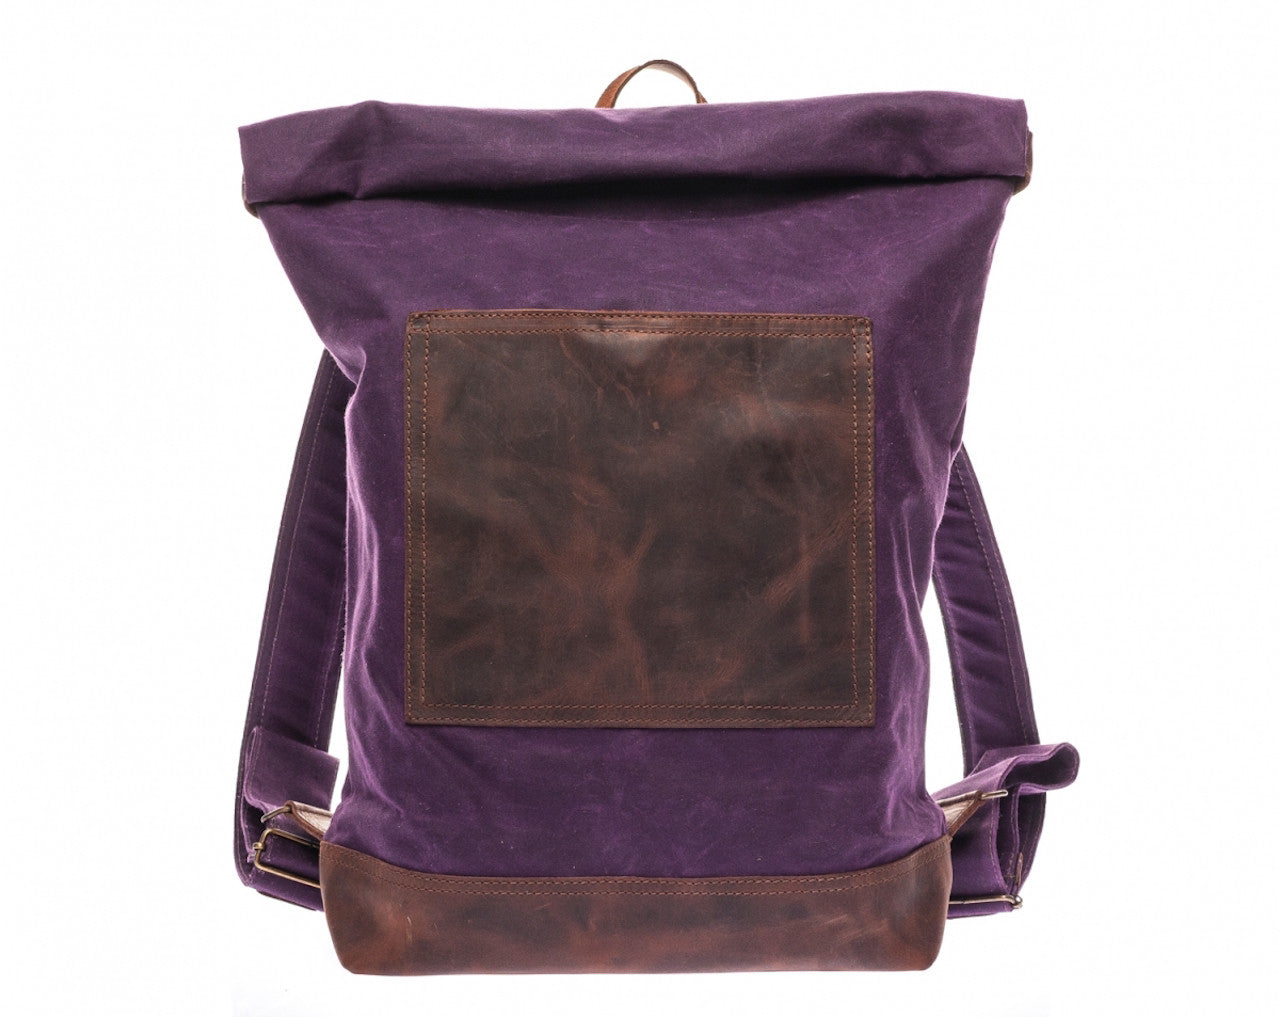 Waxed Canvas Leather Roll Top Backpack for Men & Women - Purple Canvas with Brown Leather by Tram 21 on Jetset Times SHOP